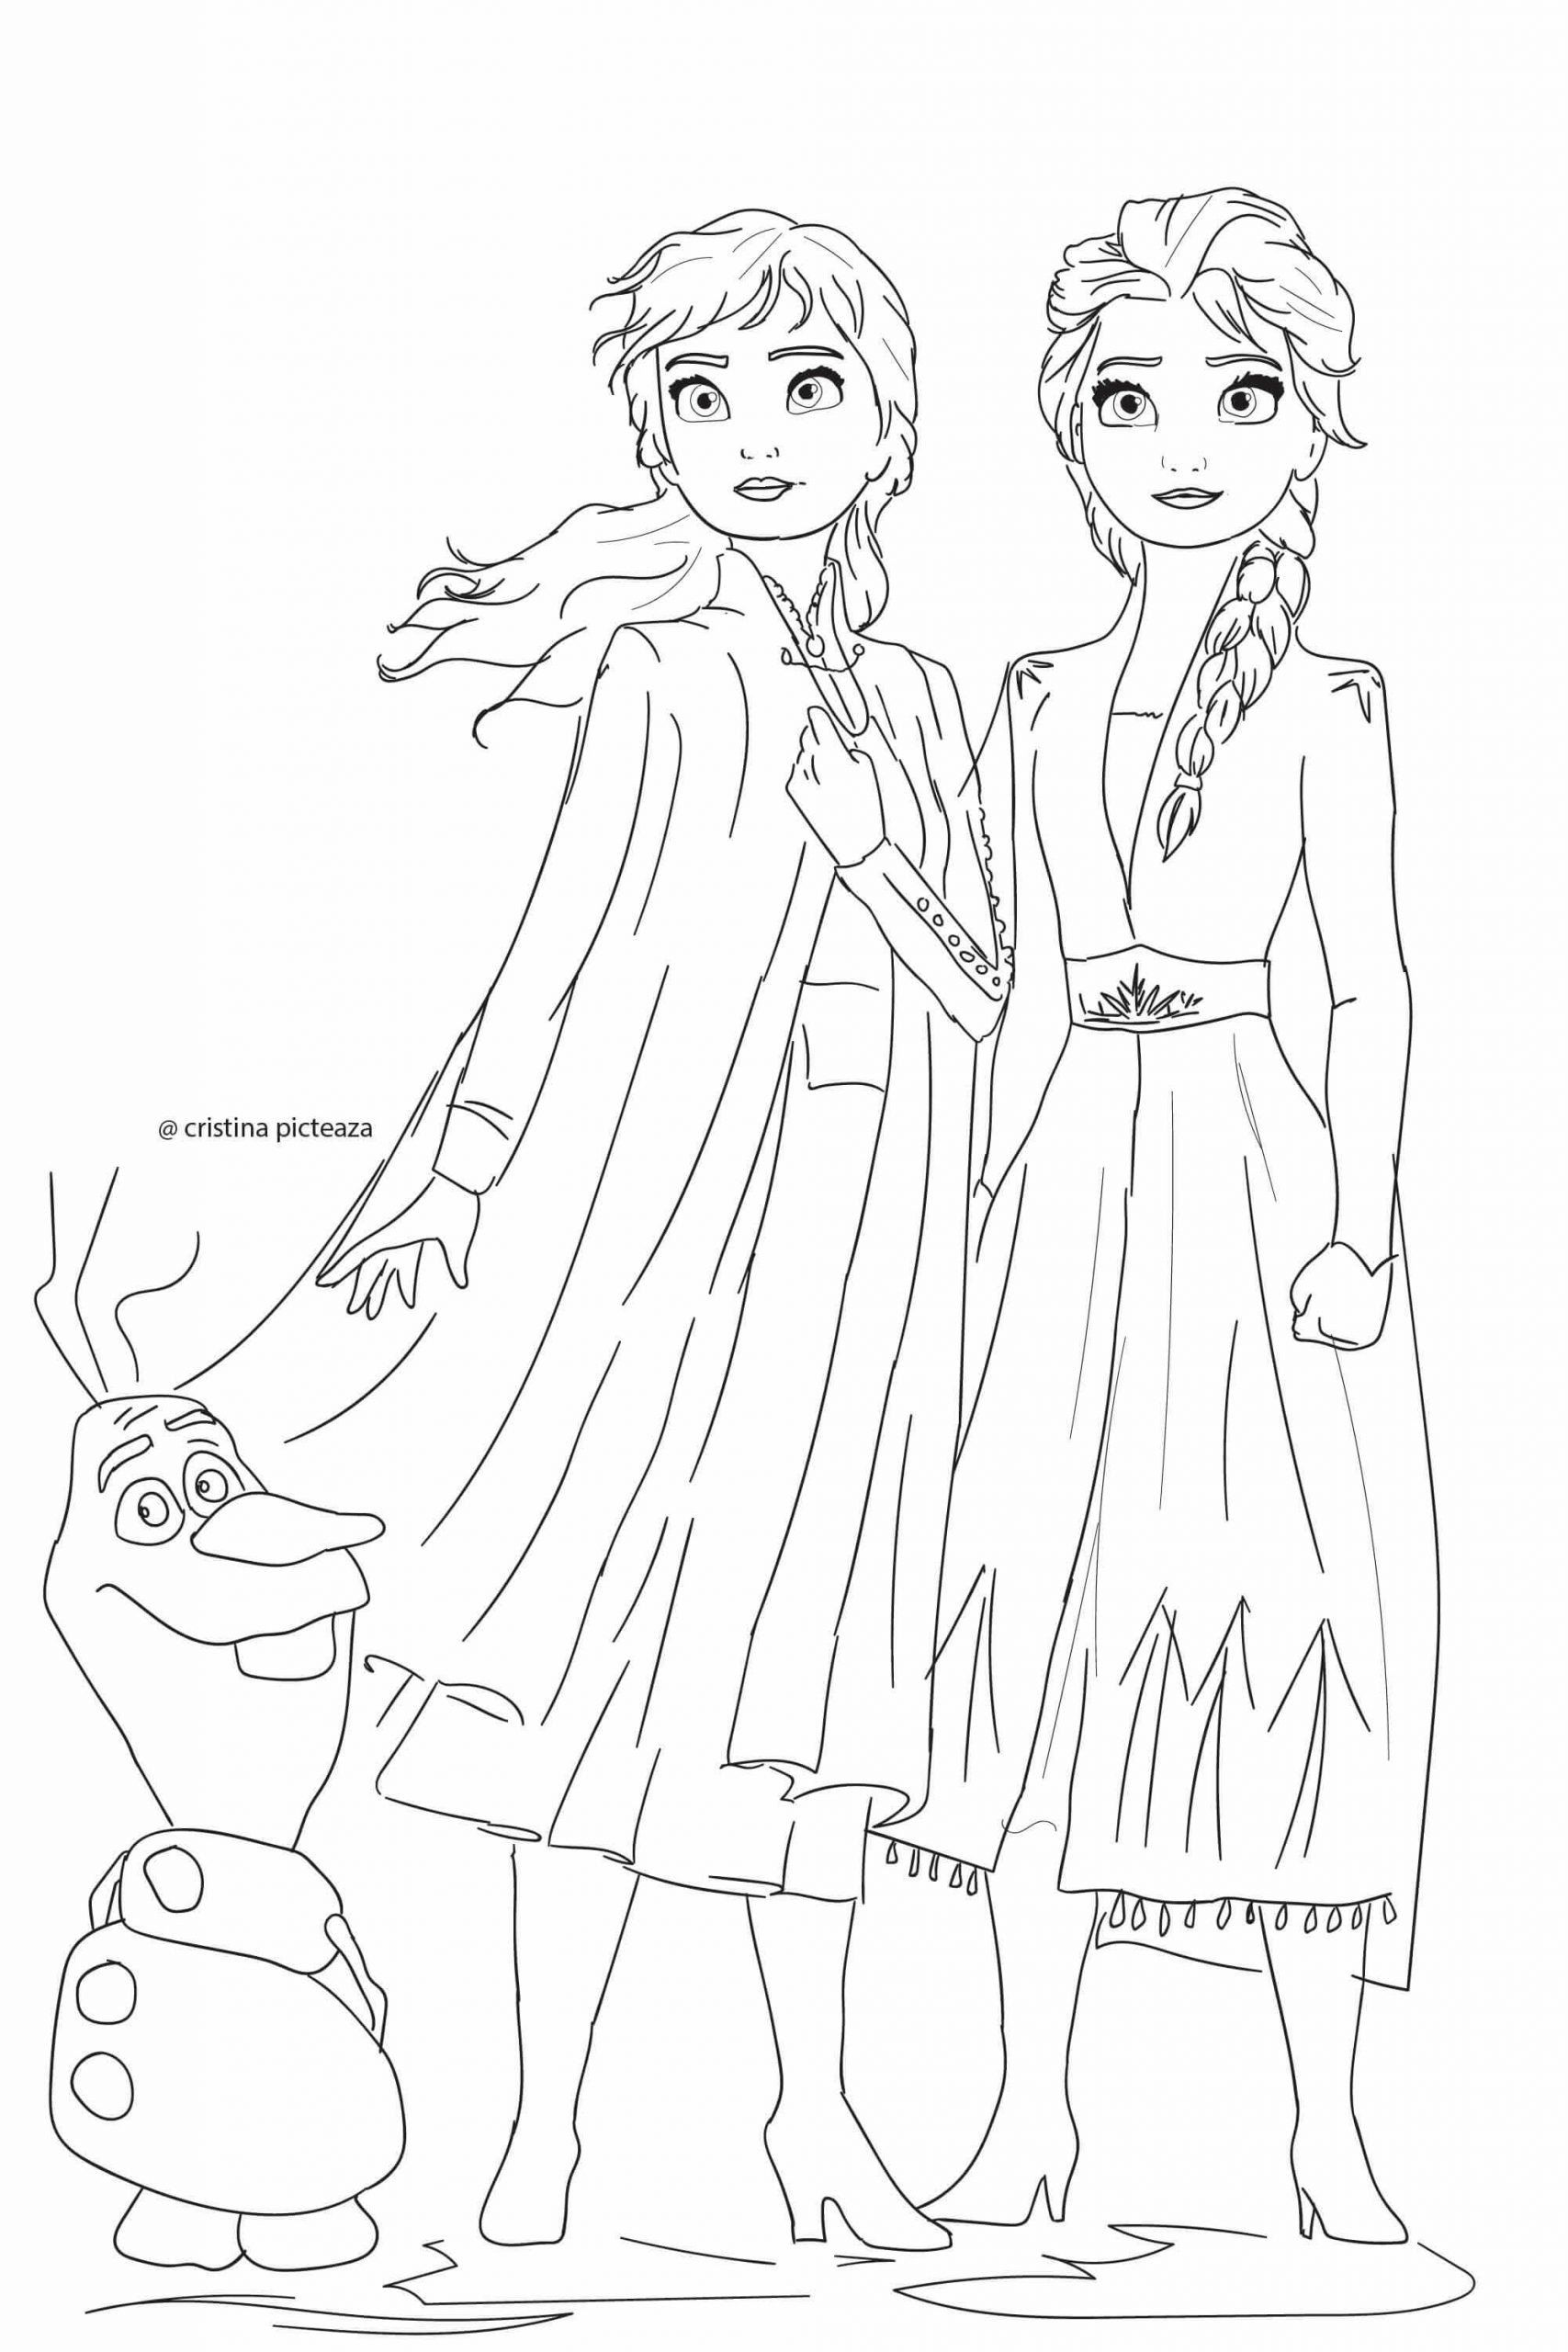 Frozen Coloring Books For Kids Coloring Pages Color Frozen Coloring Elsa And Anna Sh In 2020 Elsa Coloring Pages Princess Coloring Pages Disney Princess Coloring Pages